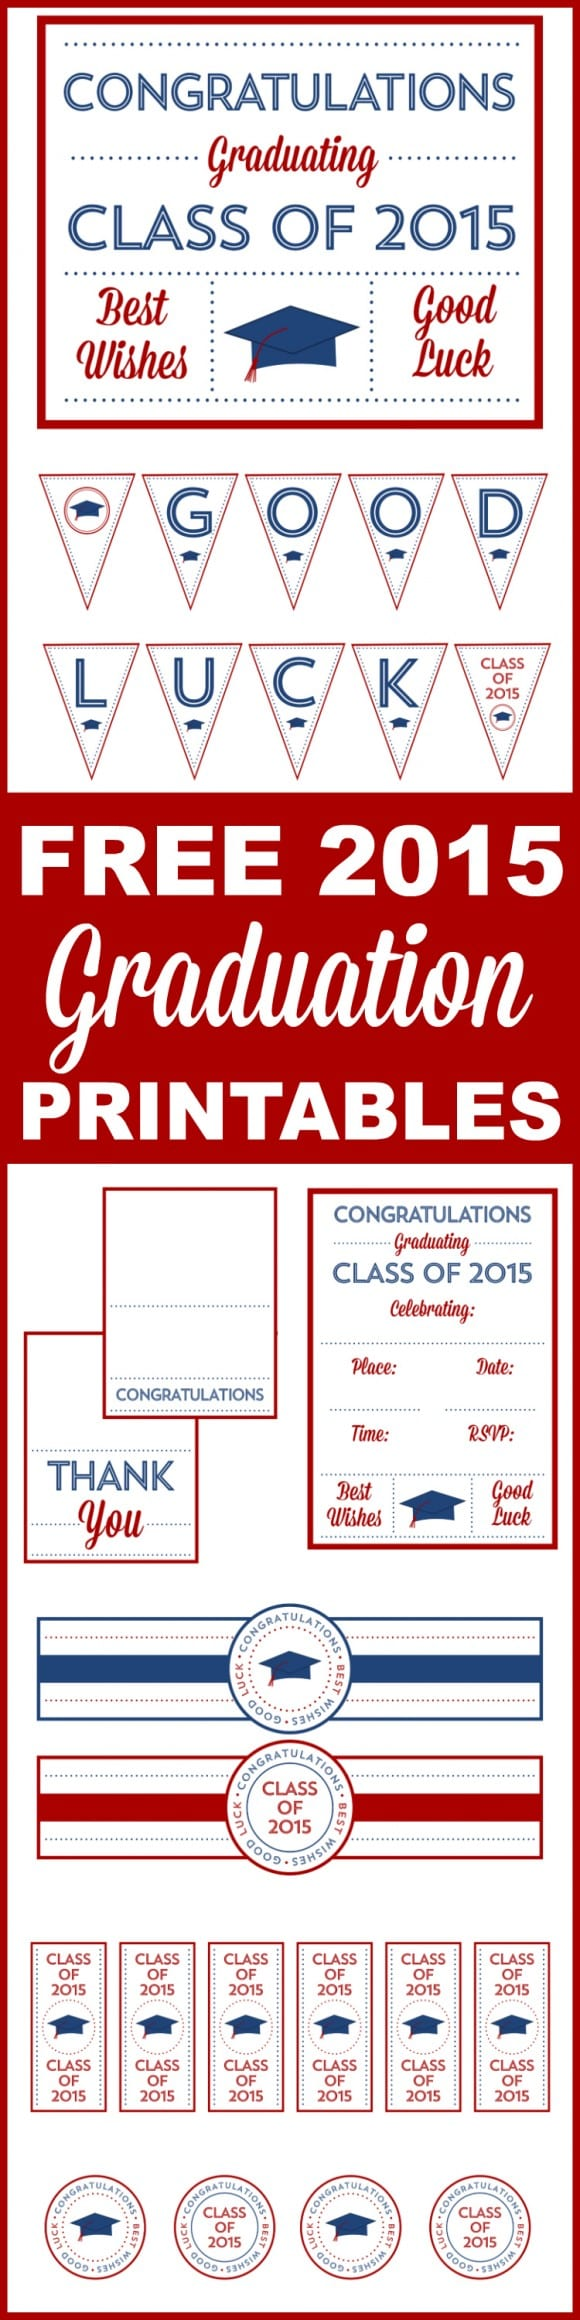 Free 2015 Graduation Printables | CatchMyParty.com